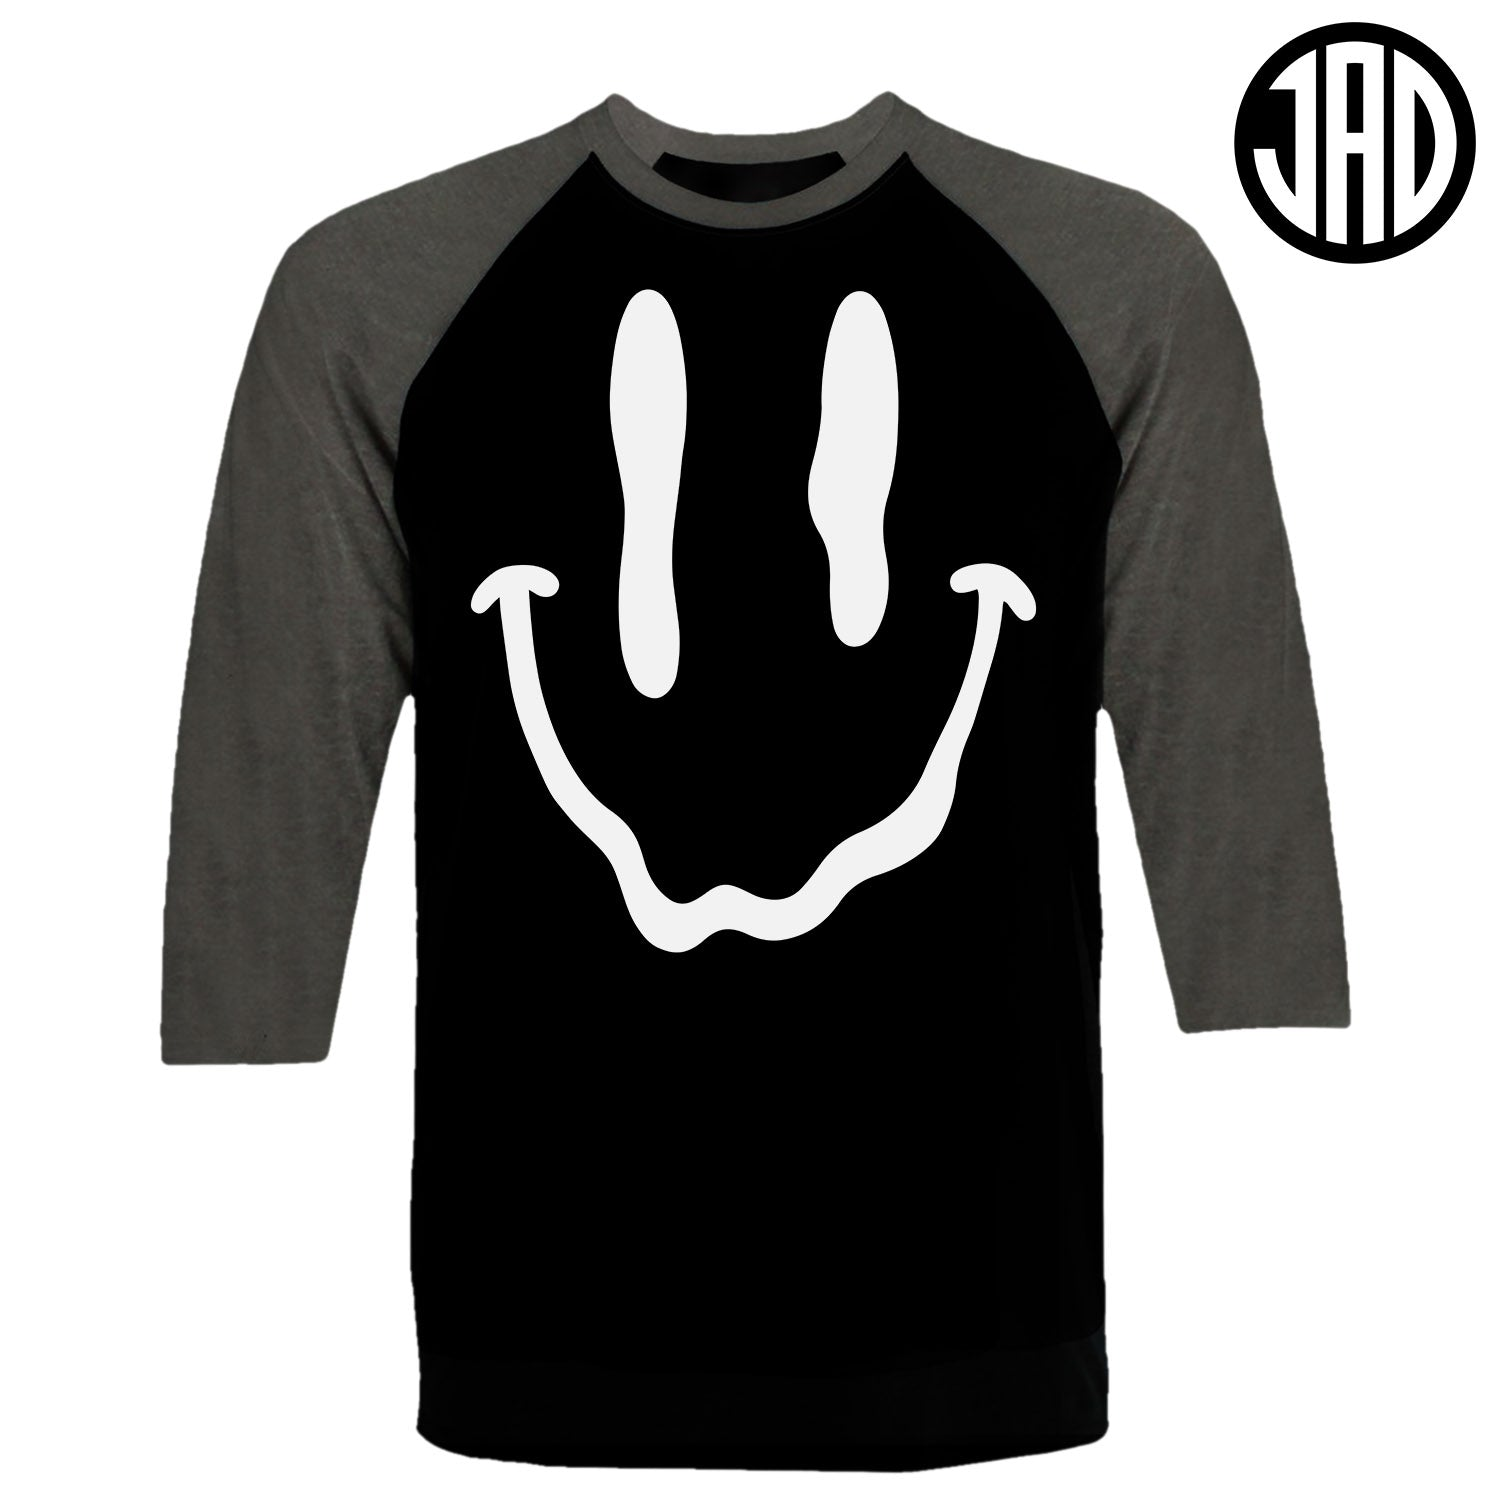 Melty Face - Men's Baseball Tee